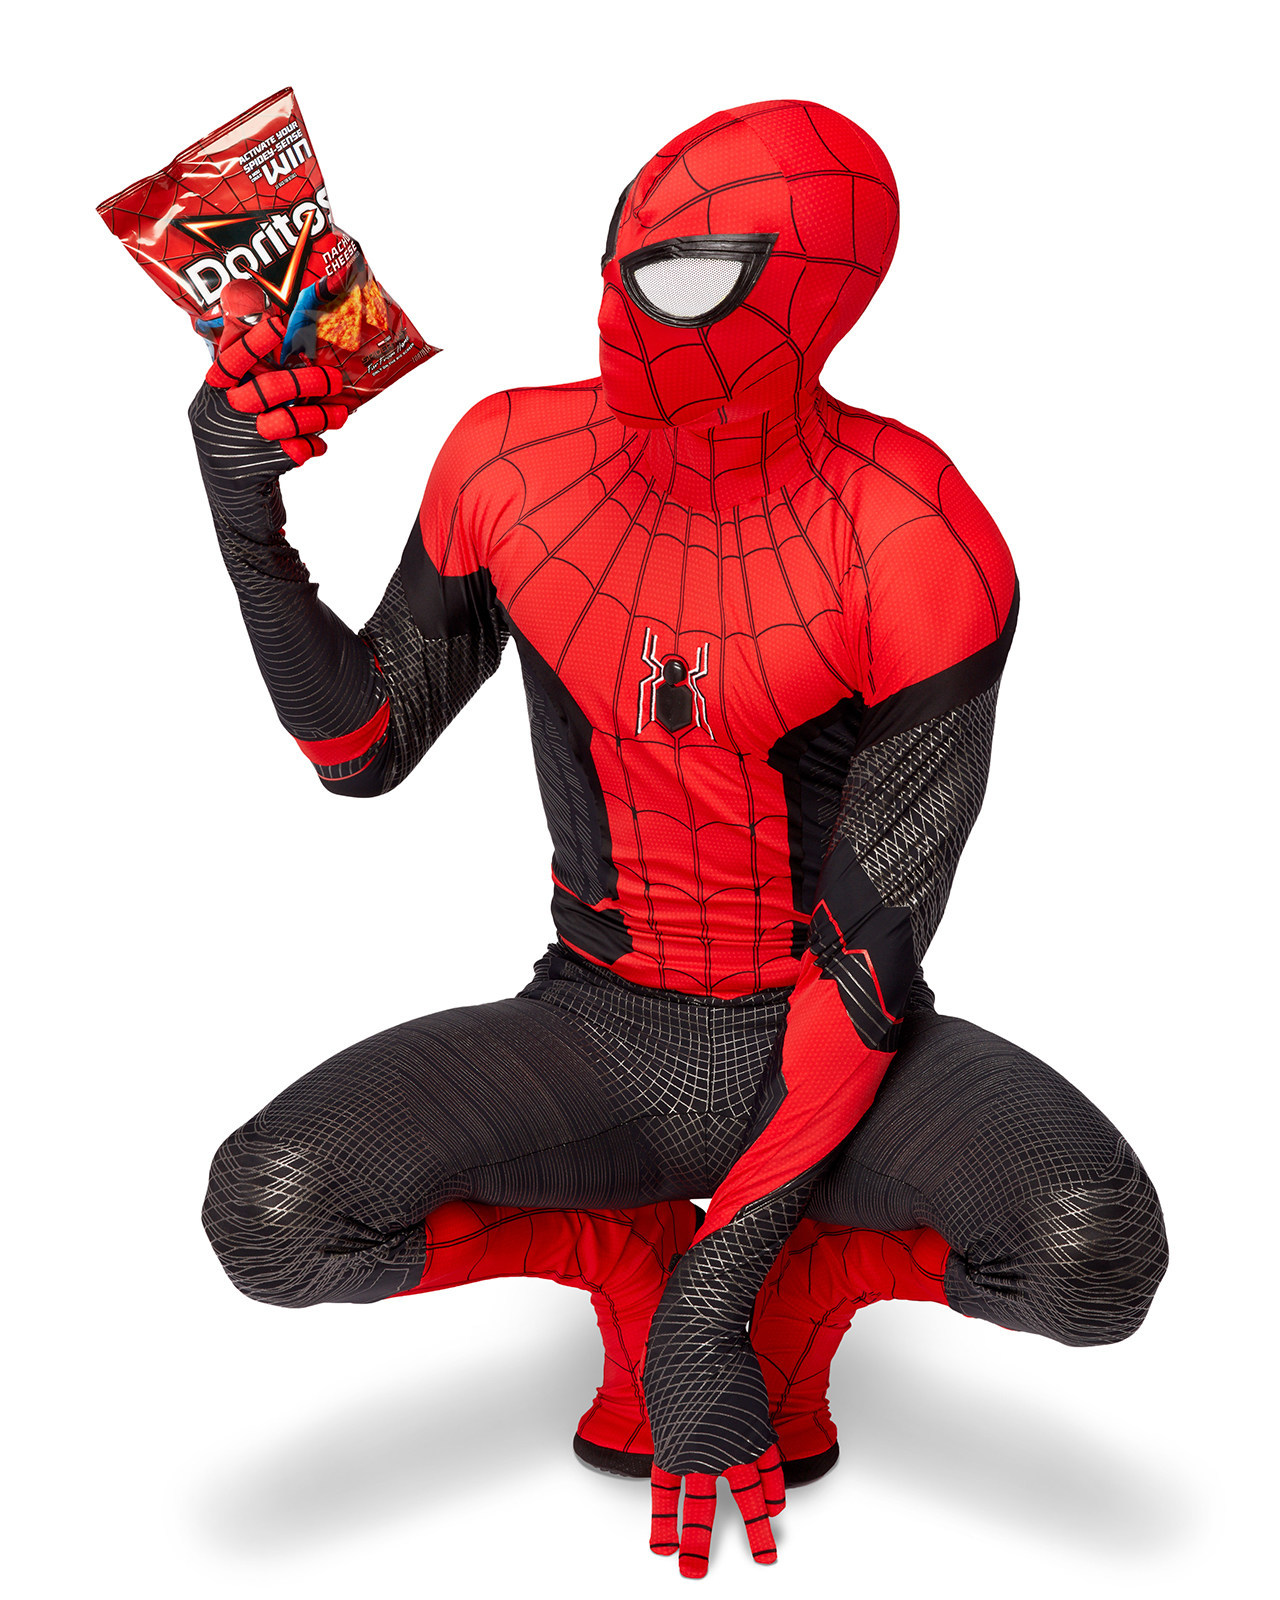 Incognito Doritos' Unveiled To Help Spider-Man™ Conceal His